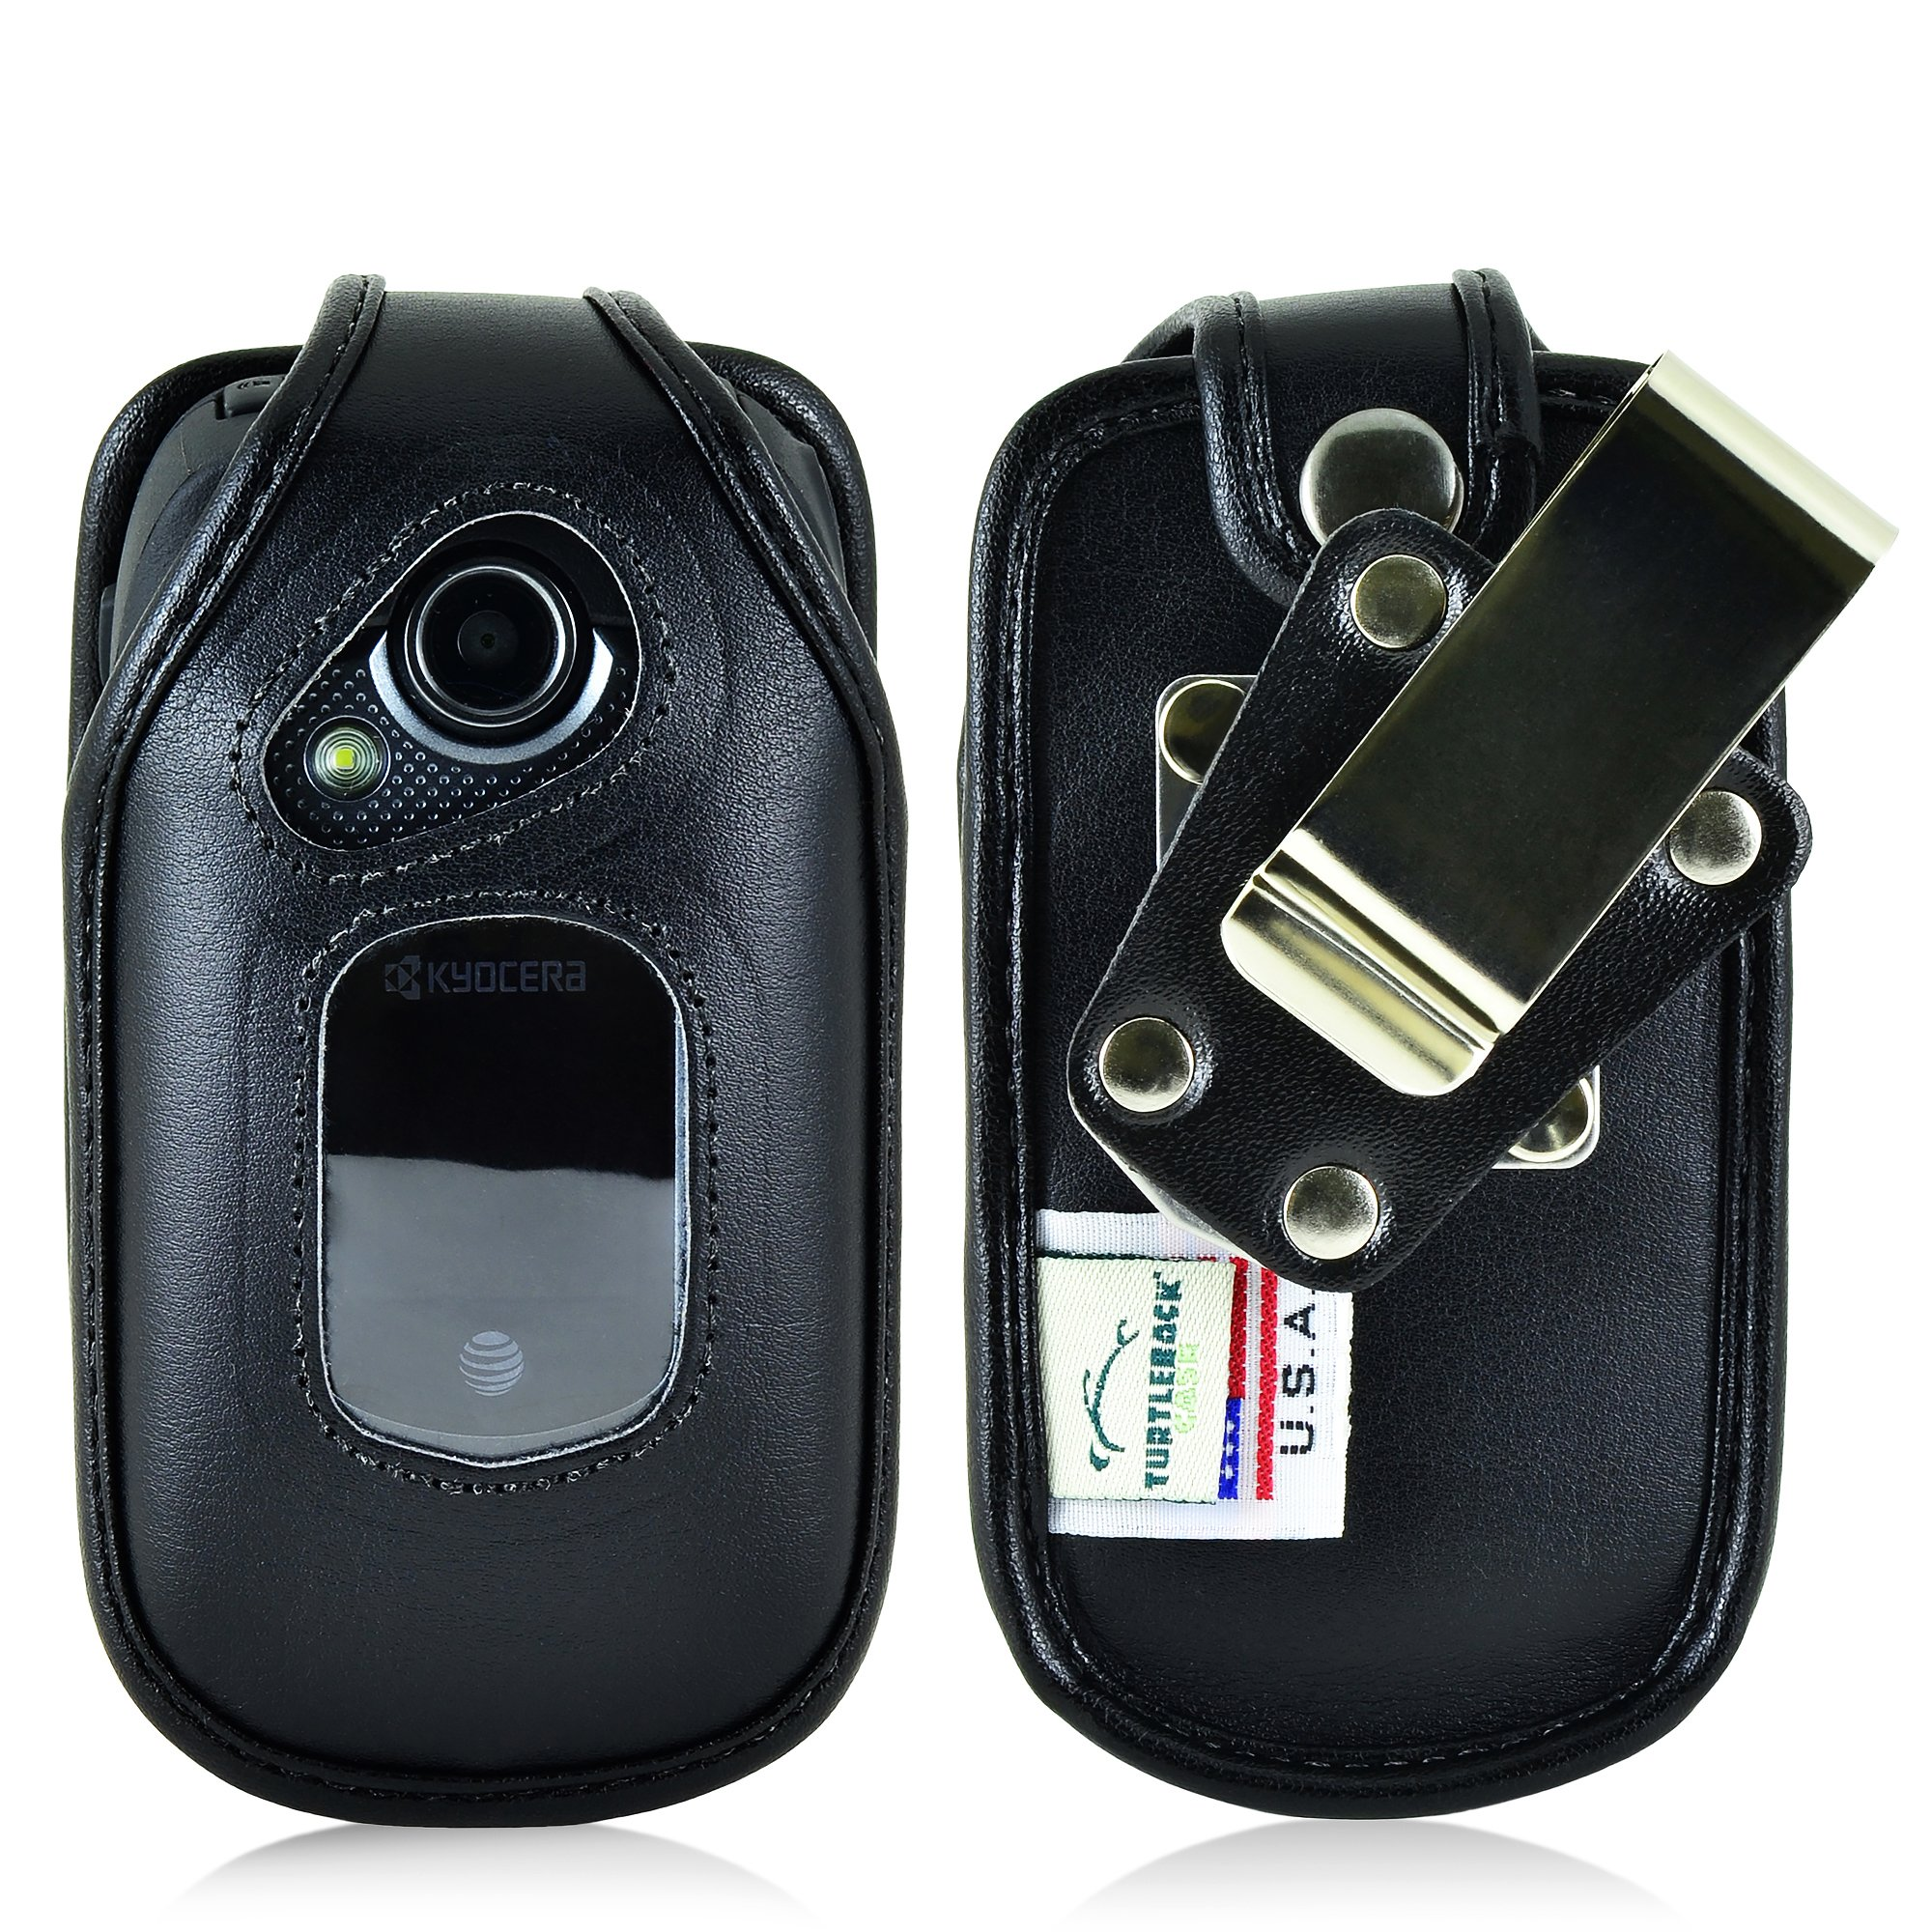 Turtleback Fitted Case Compatible with Kyocera DuraXE Flip Phone Holster Black Leather Rotating Heavy Duty Removable Metal Belt Clip Made in USA